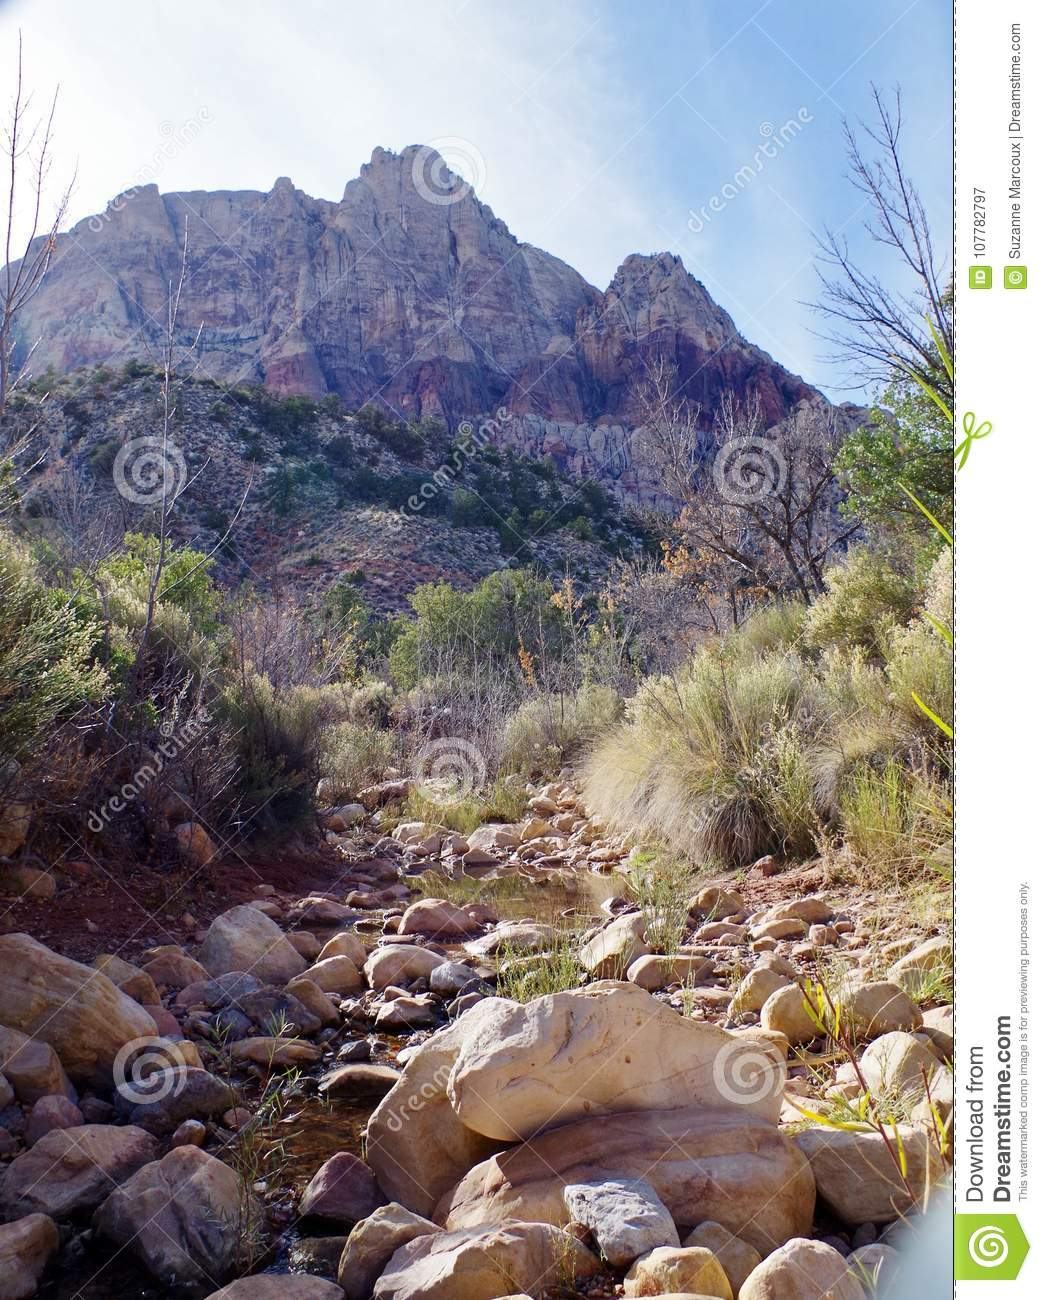 Red Rock Canyon Conservation Area, Nevada, USA